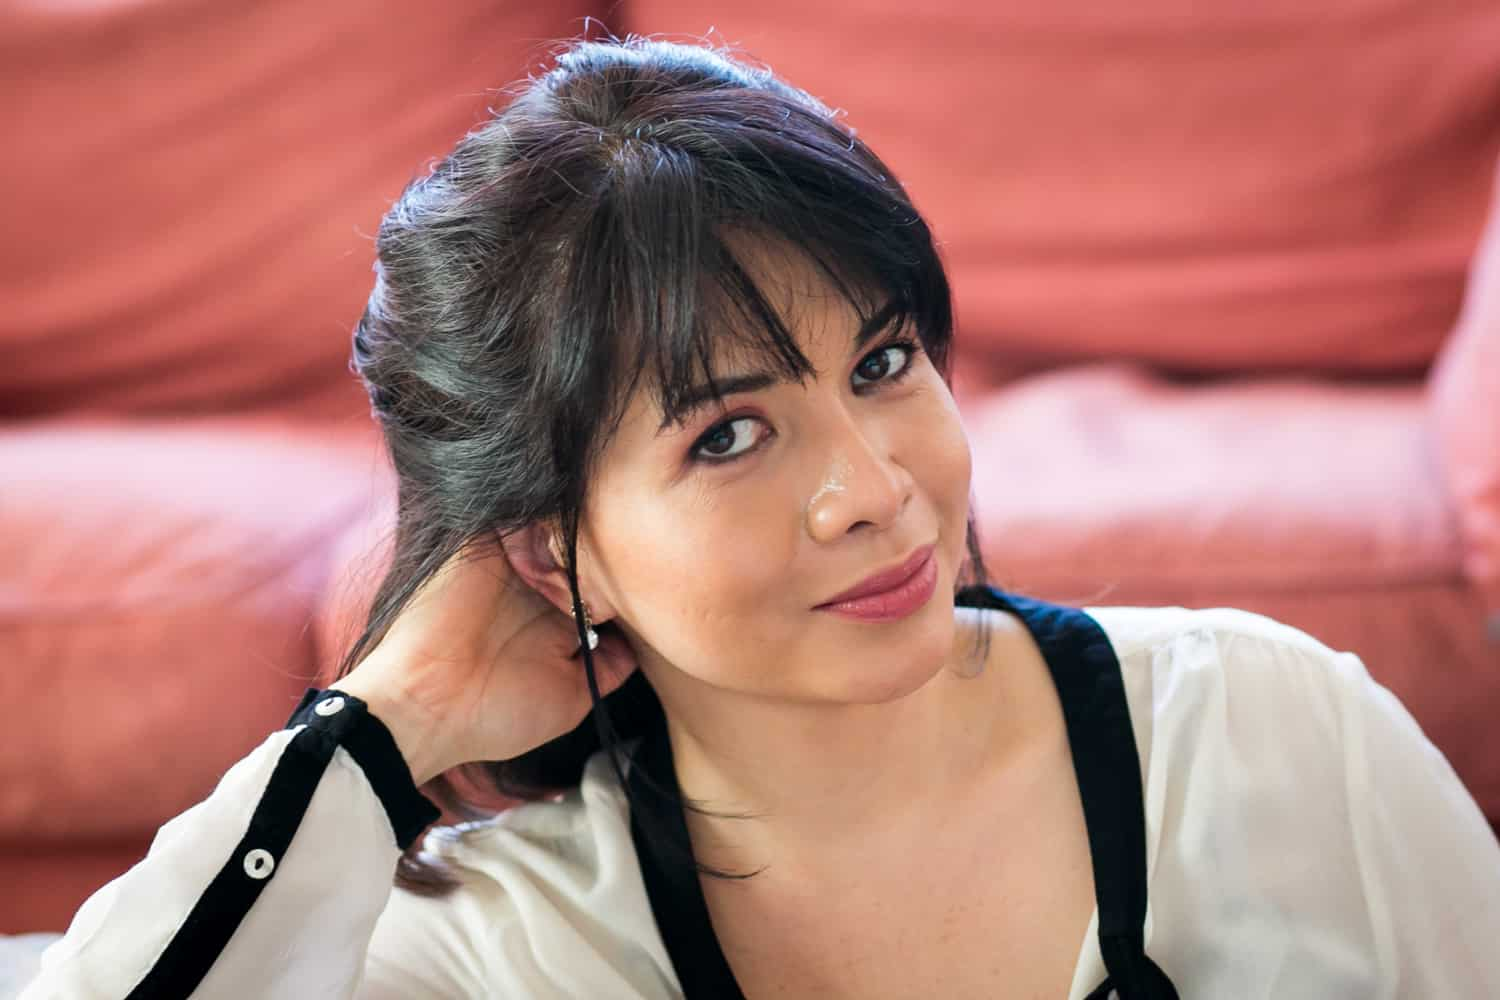 Woman with short black hair wearing black and white blouse